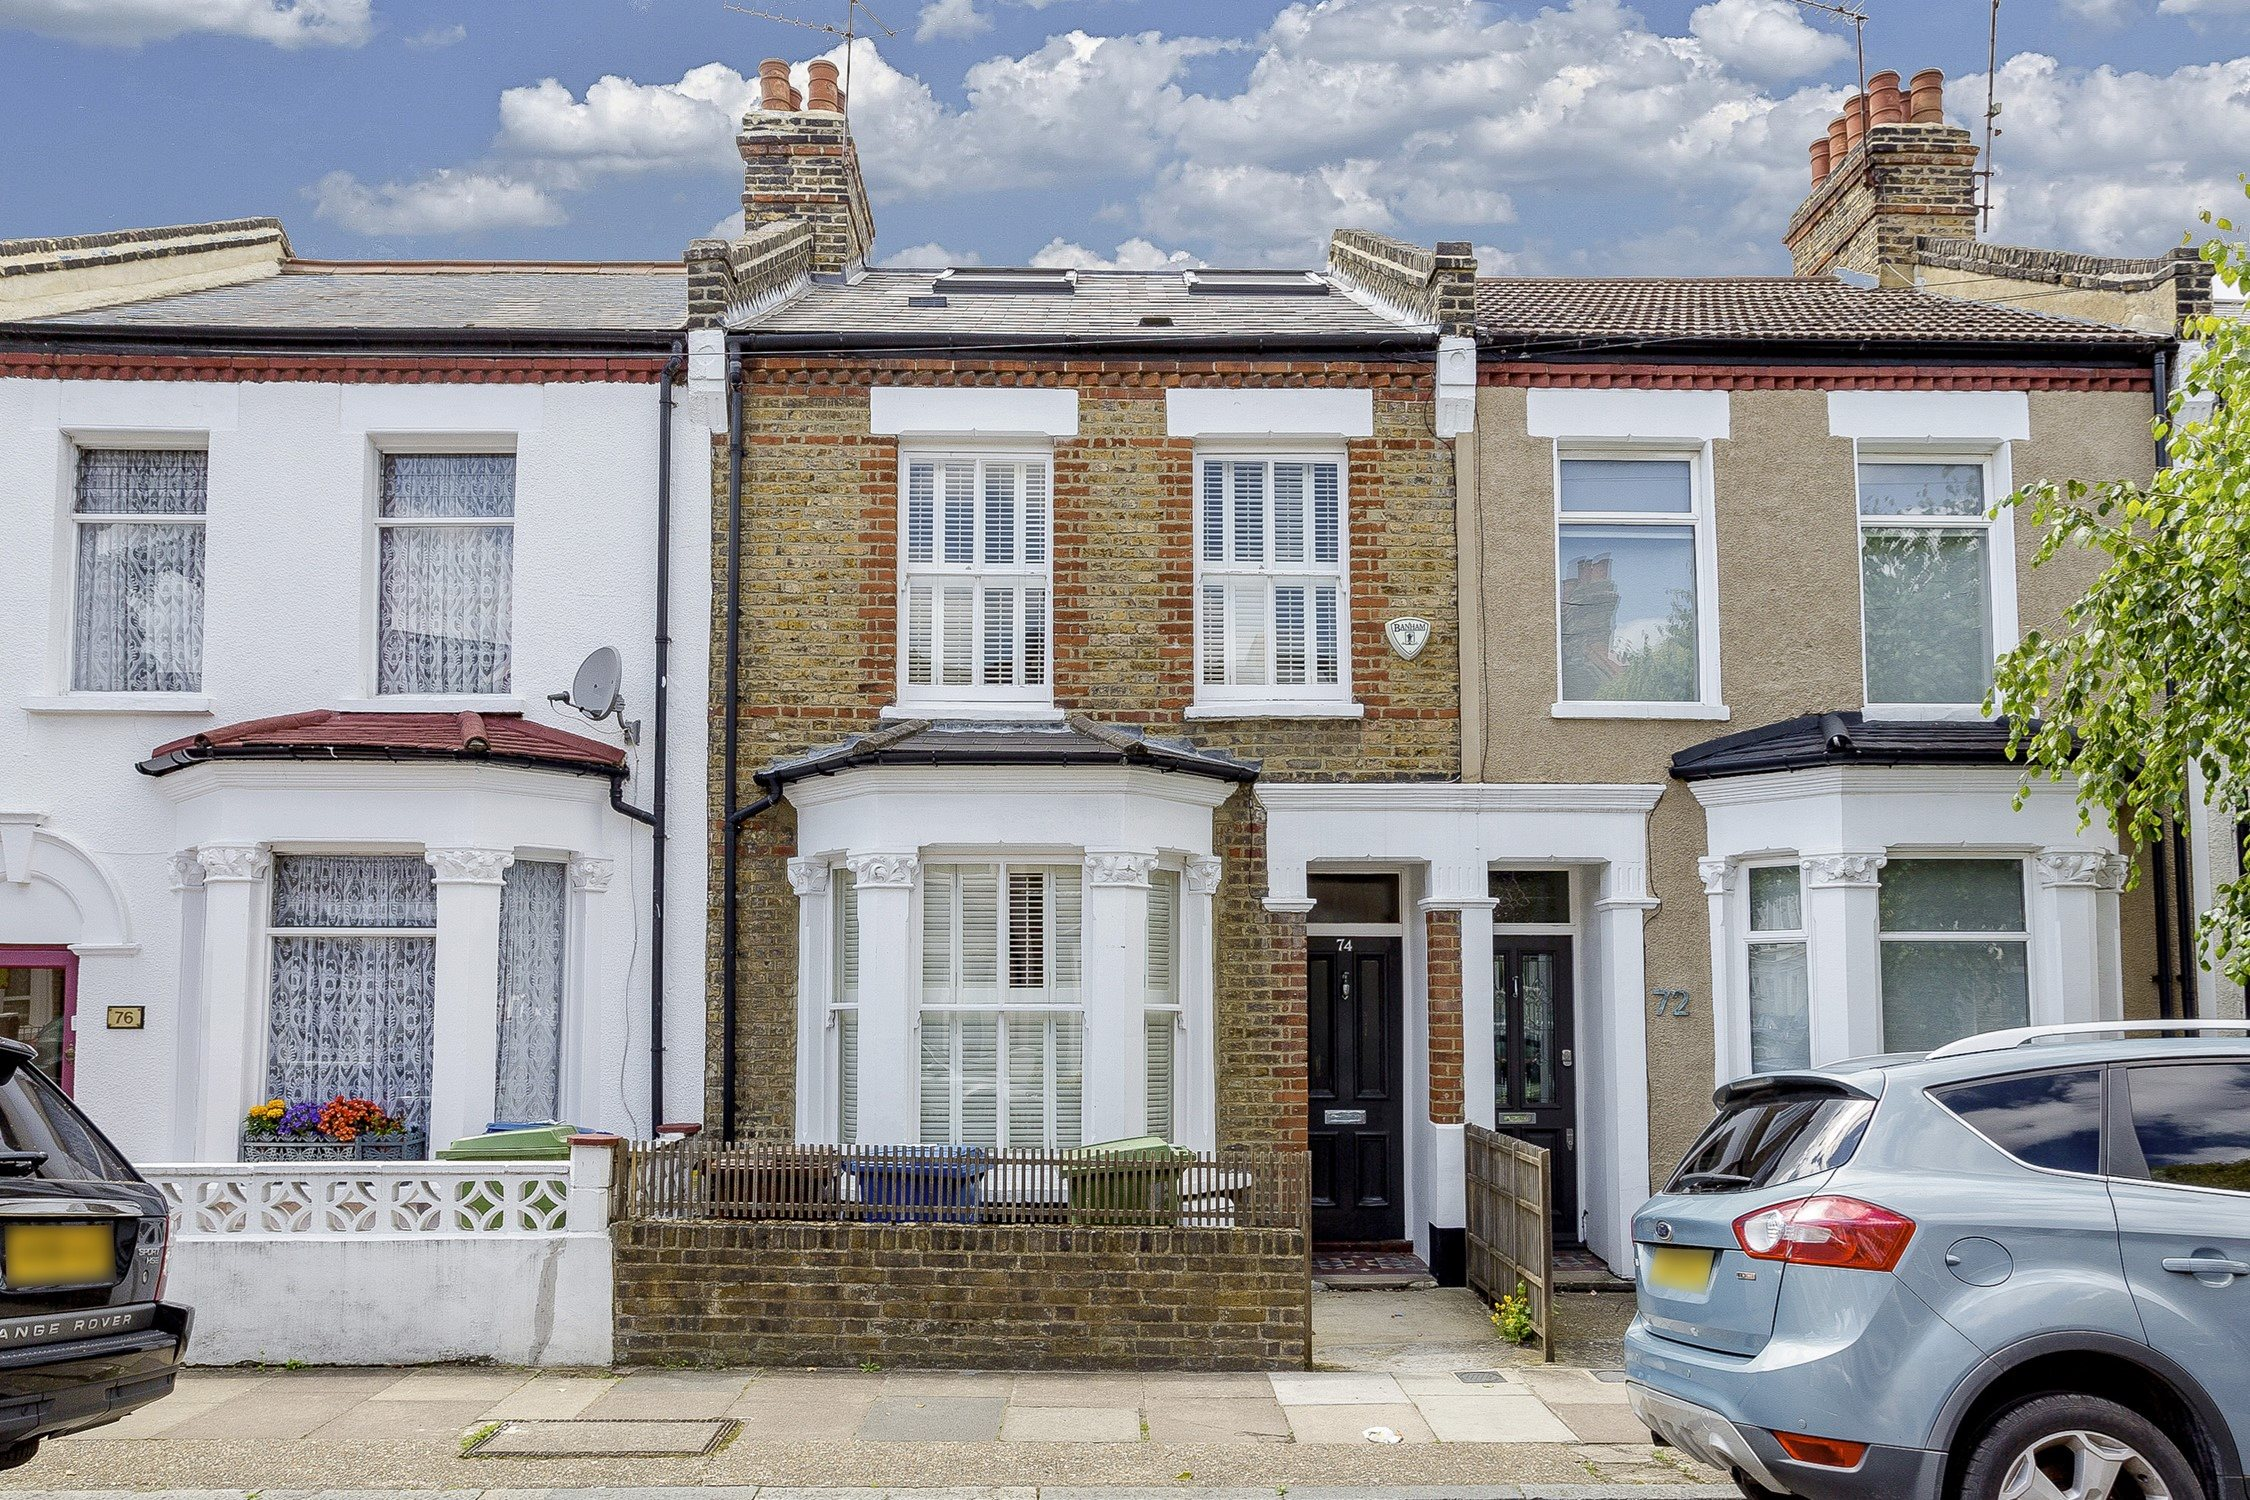 Portico 5 Bedroom House Recently Sold In Dulwich